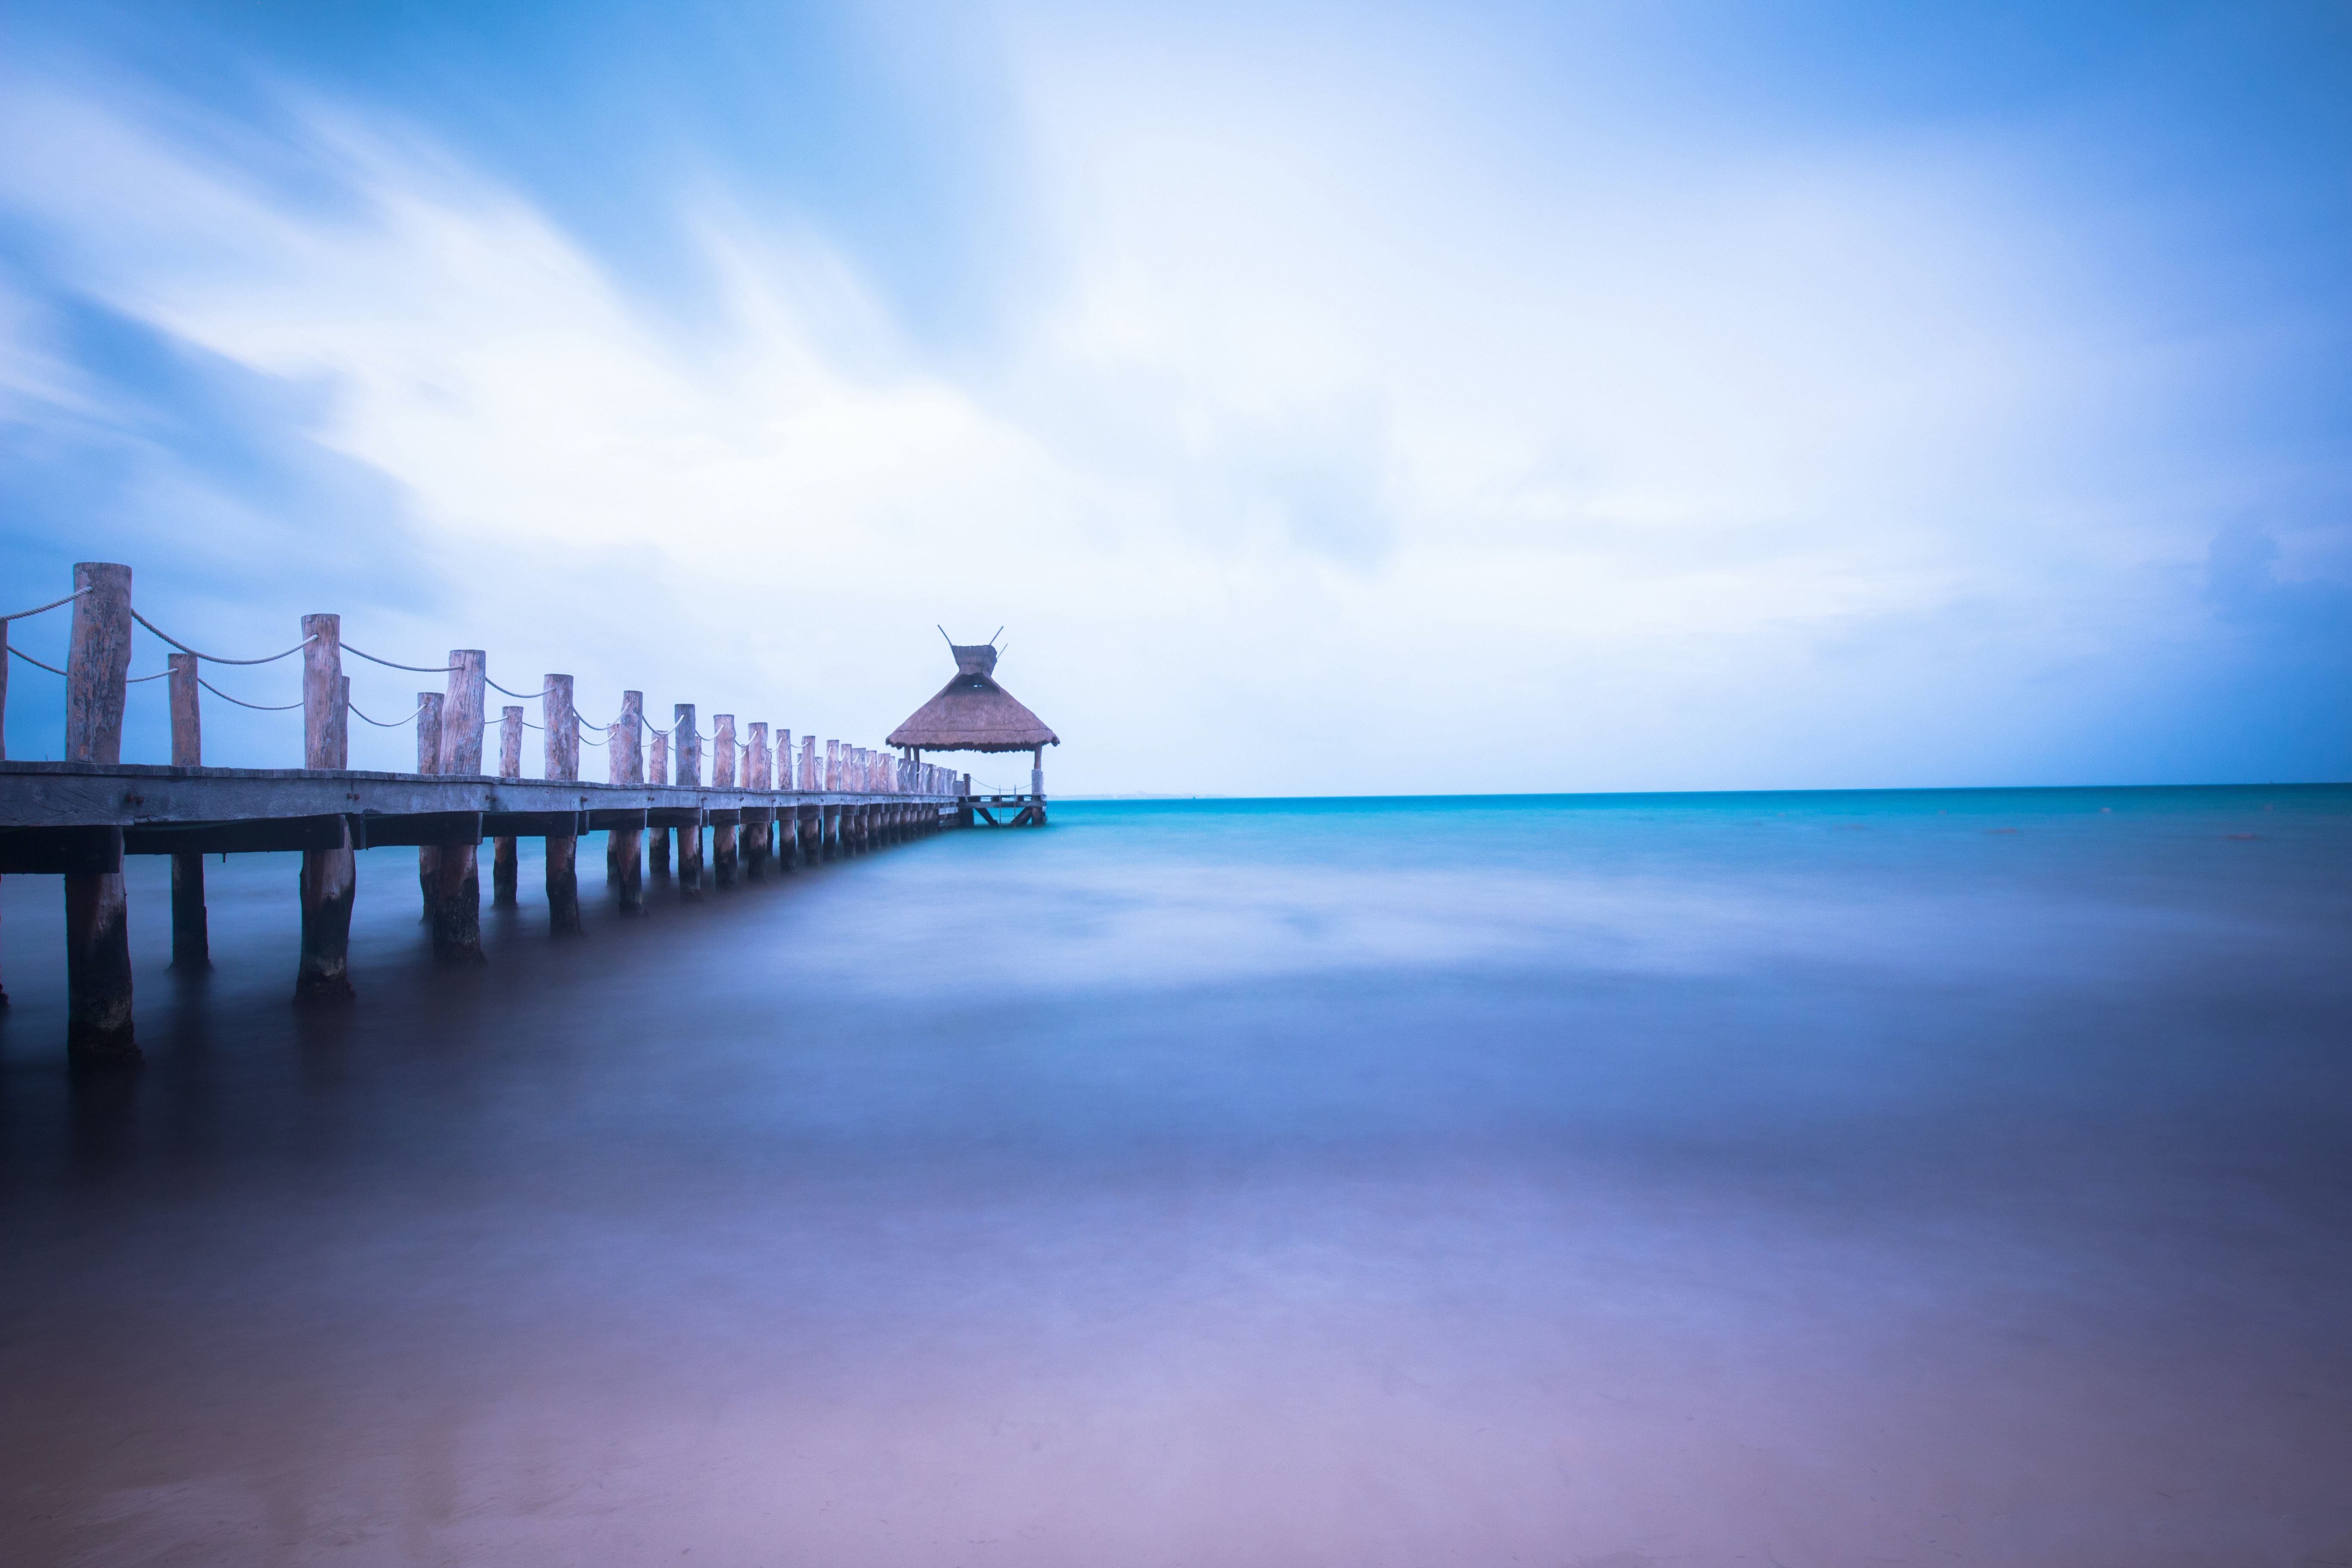 dock on body of water under cloudy sky